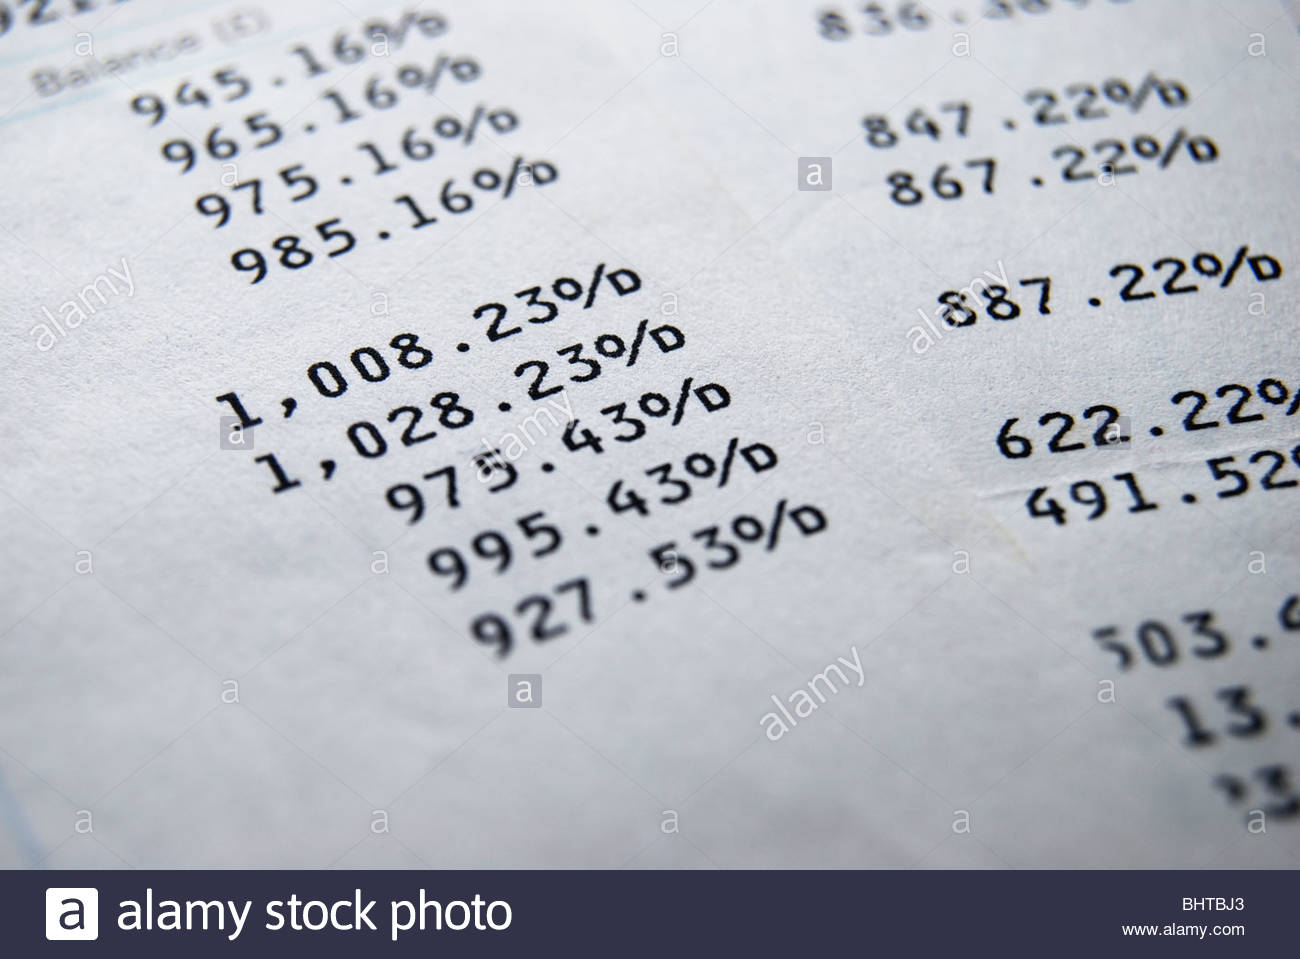 Balance on a UK bank account showing an overdraft. - Stock Image